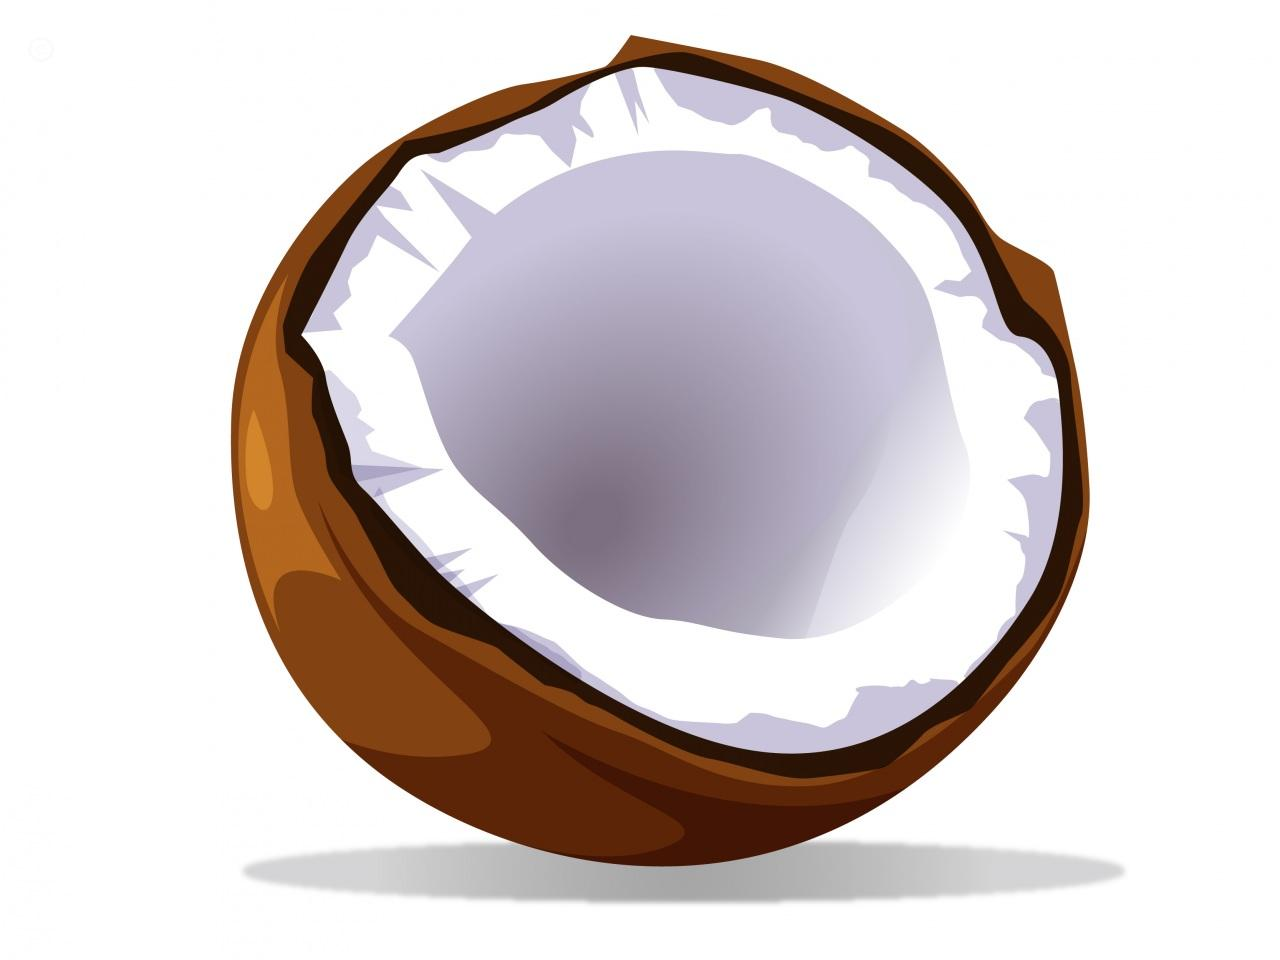 Coconut cliparts image transparent stock Free Coconut Cliparts, Download Free Clip Art, Free Clip Art on ... image transparent stock